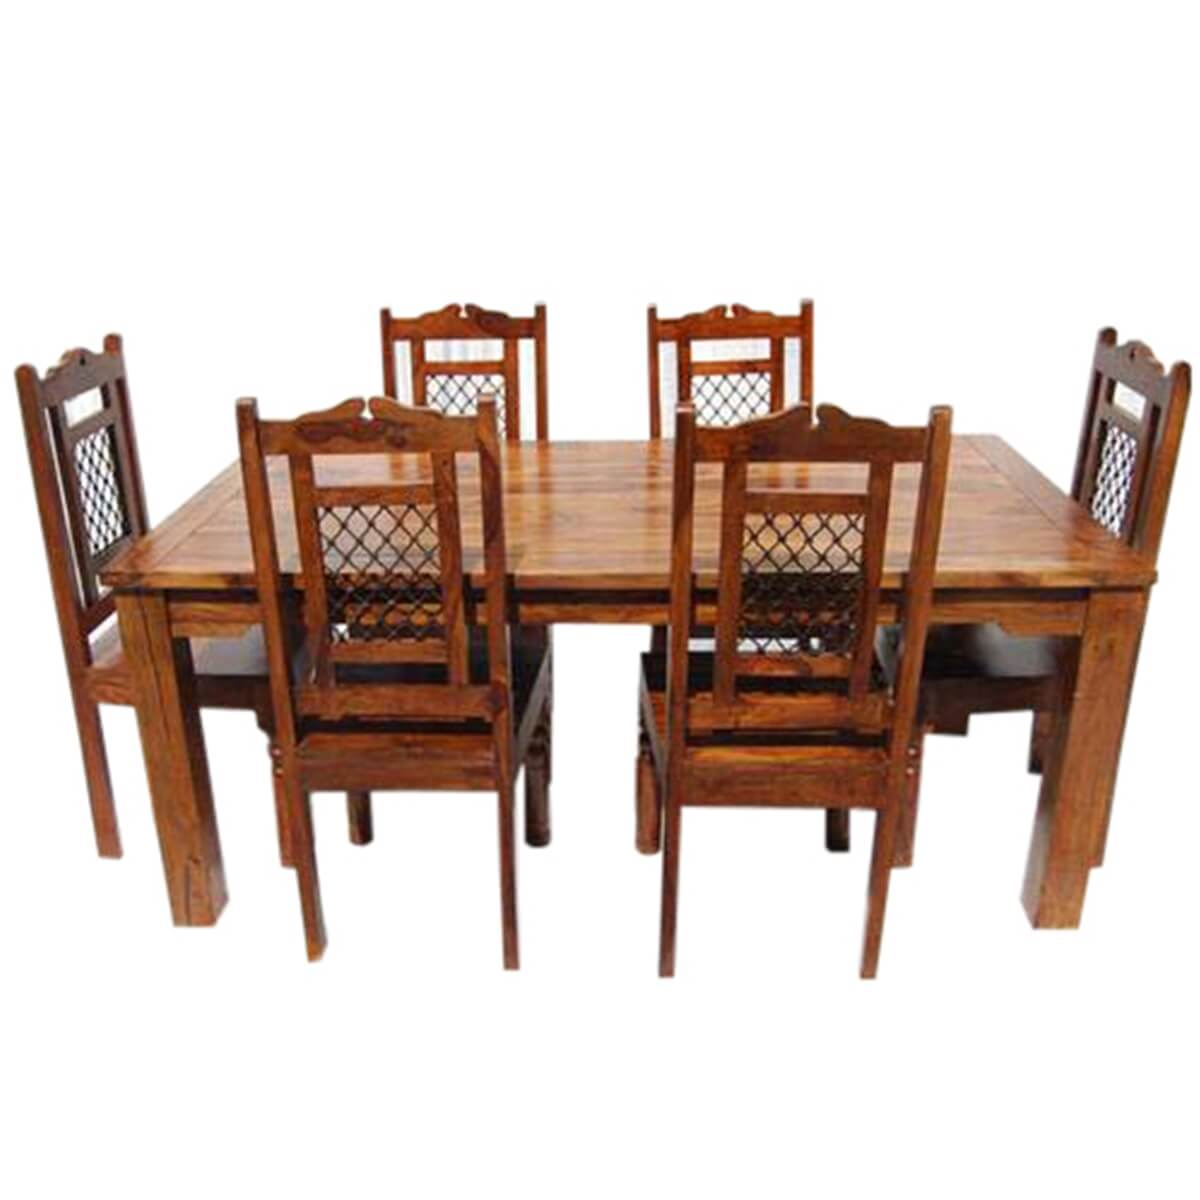 Swiss alps solid wood 7pc farmhouse dining table and chair set for Solid wood dining room table and chairs